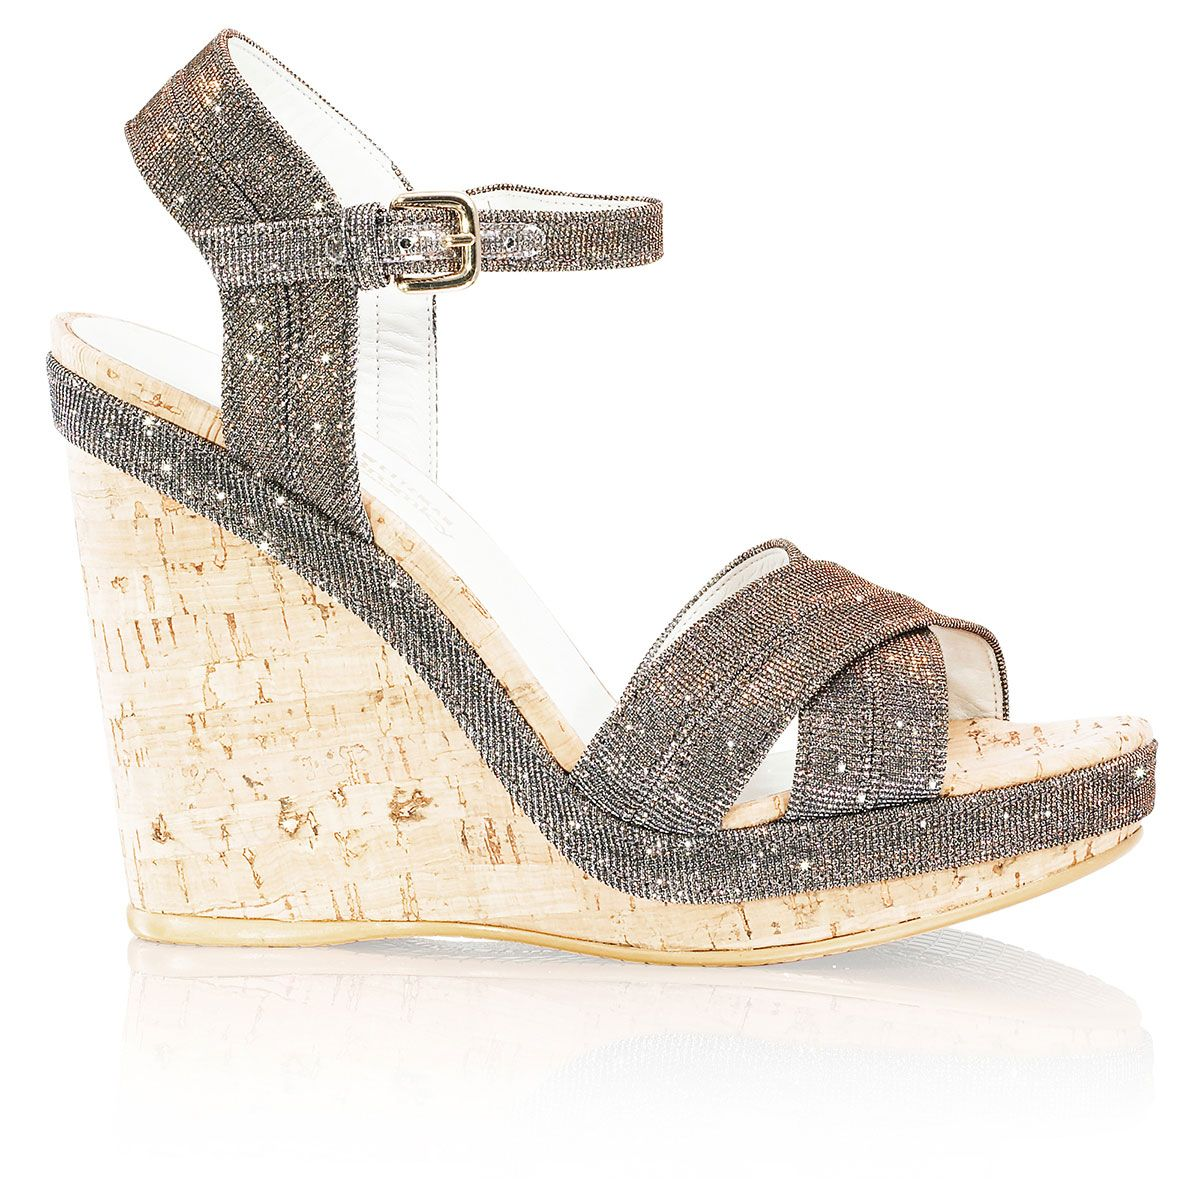 Womens sandals russell and bromley - Kate S Minx In In A Shimmering Glitter Fabric At Russell Bromley